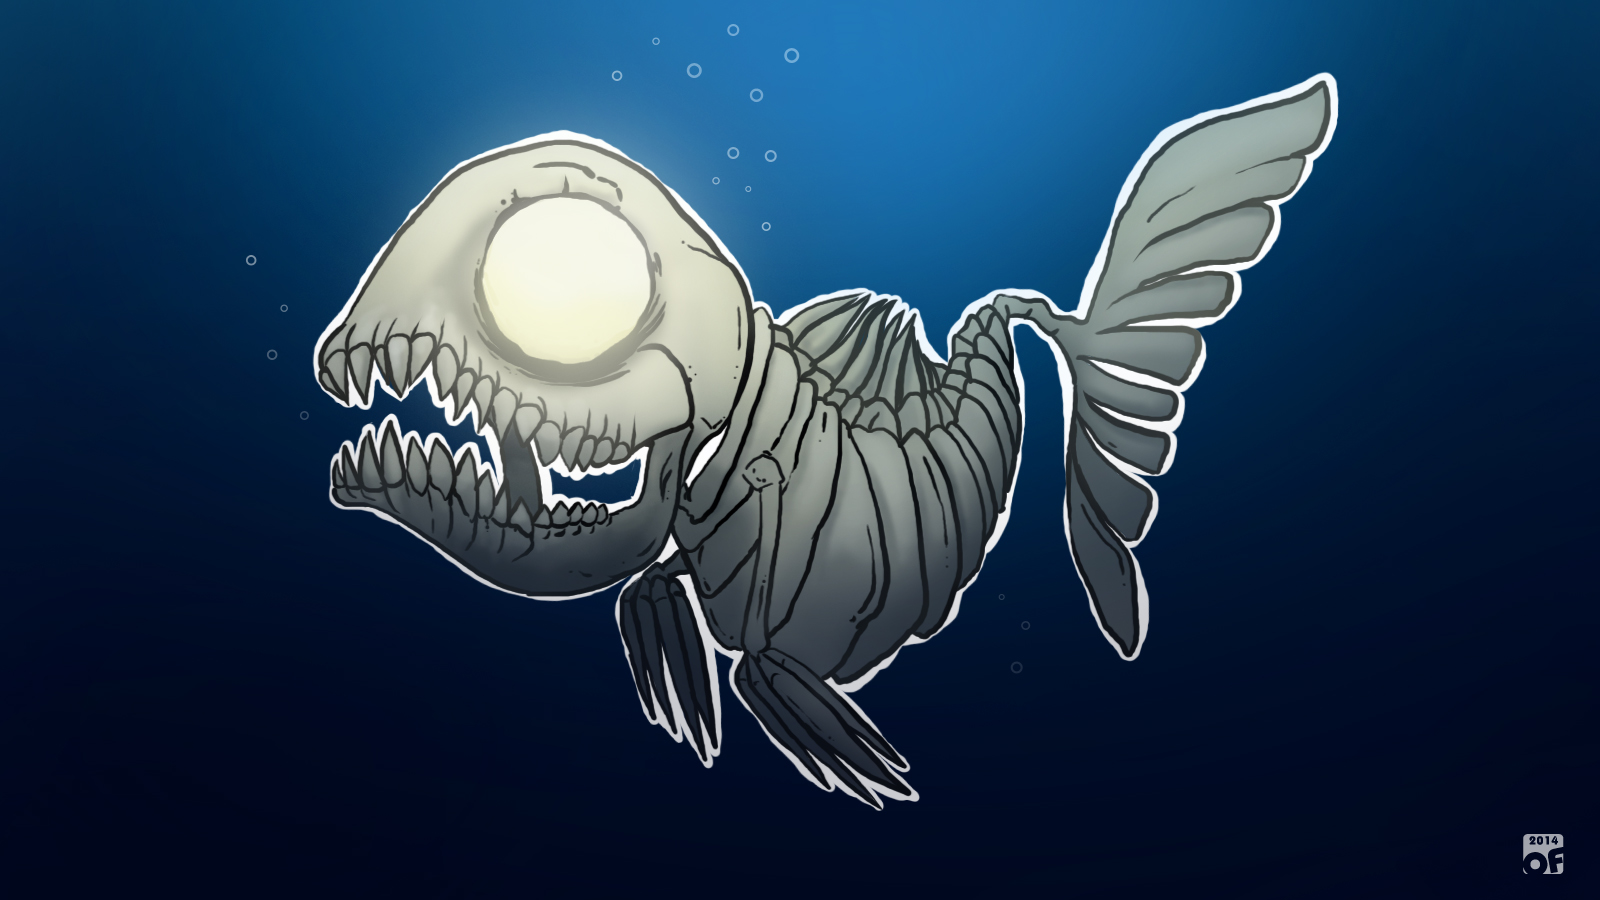 Creature drawing 01: Fishbone